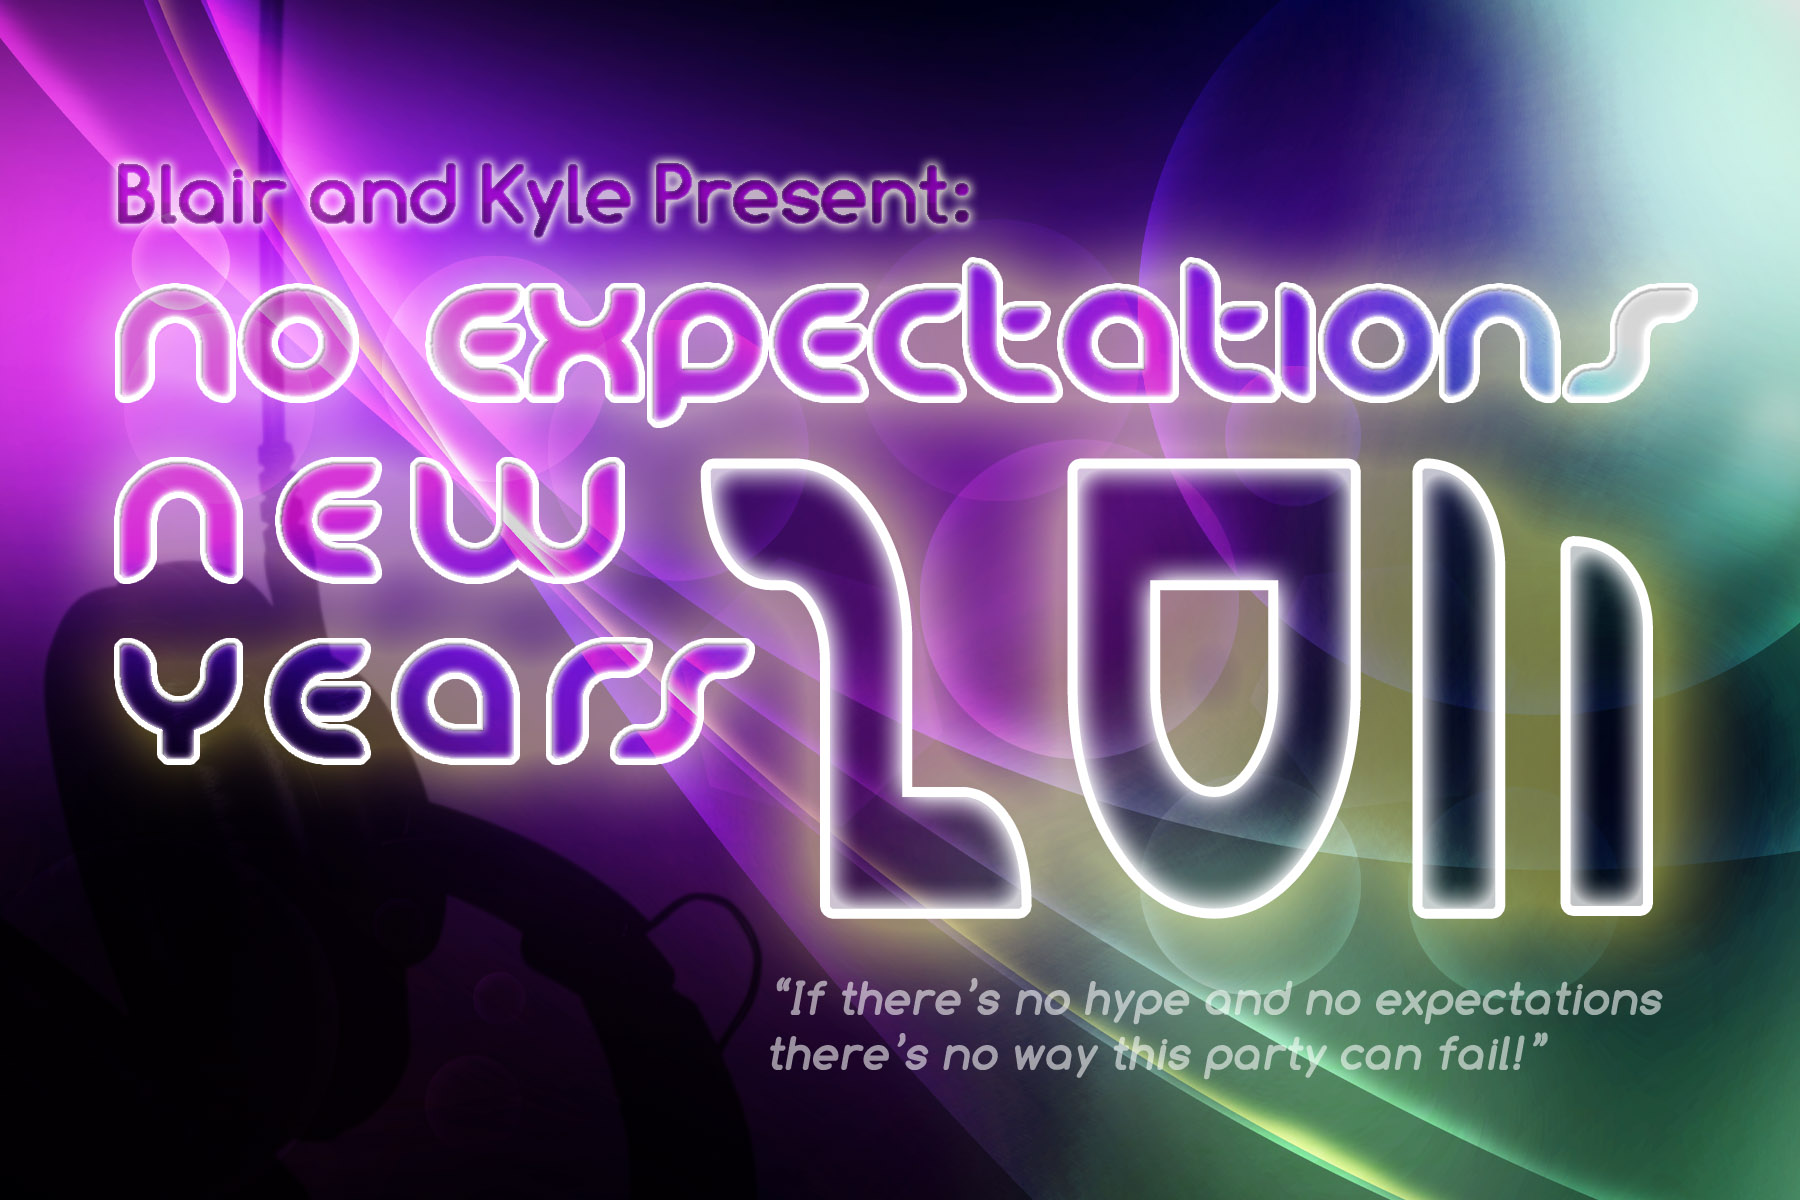 NYE handout card (front)